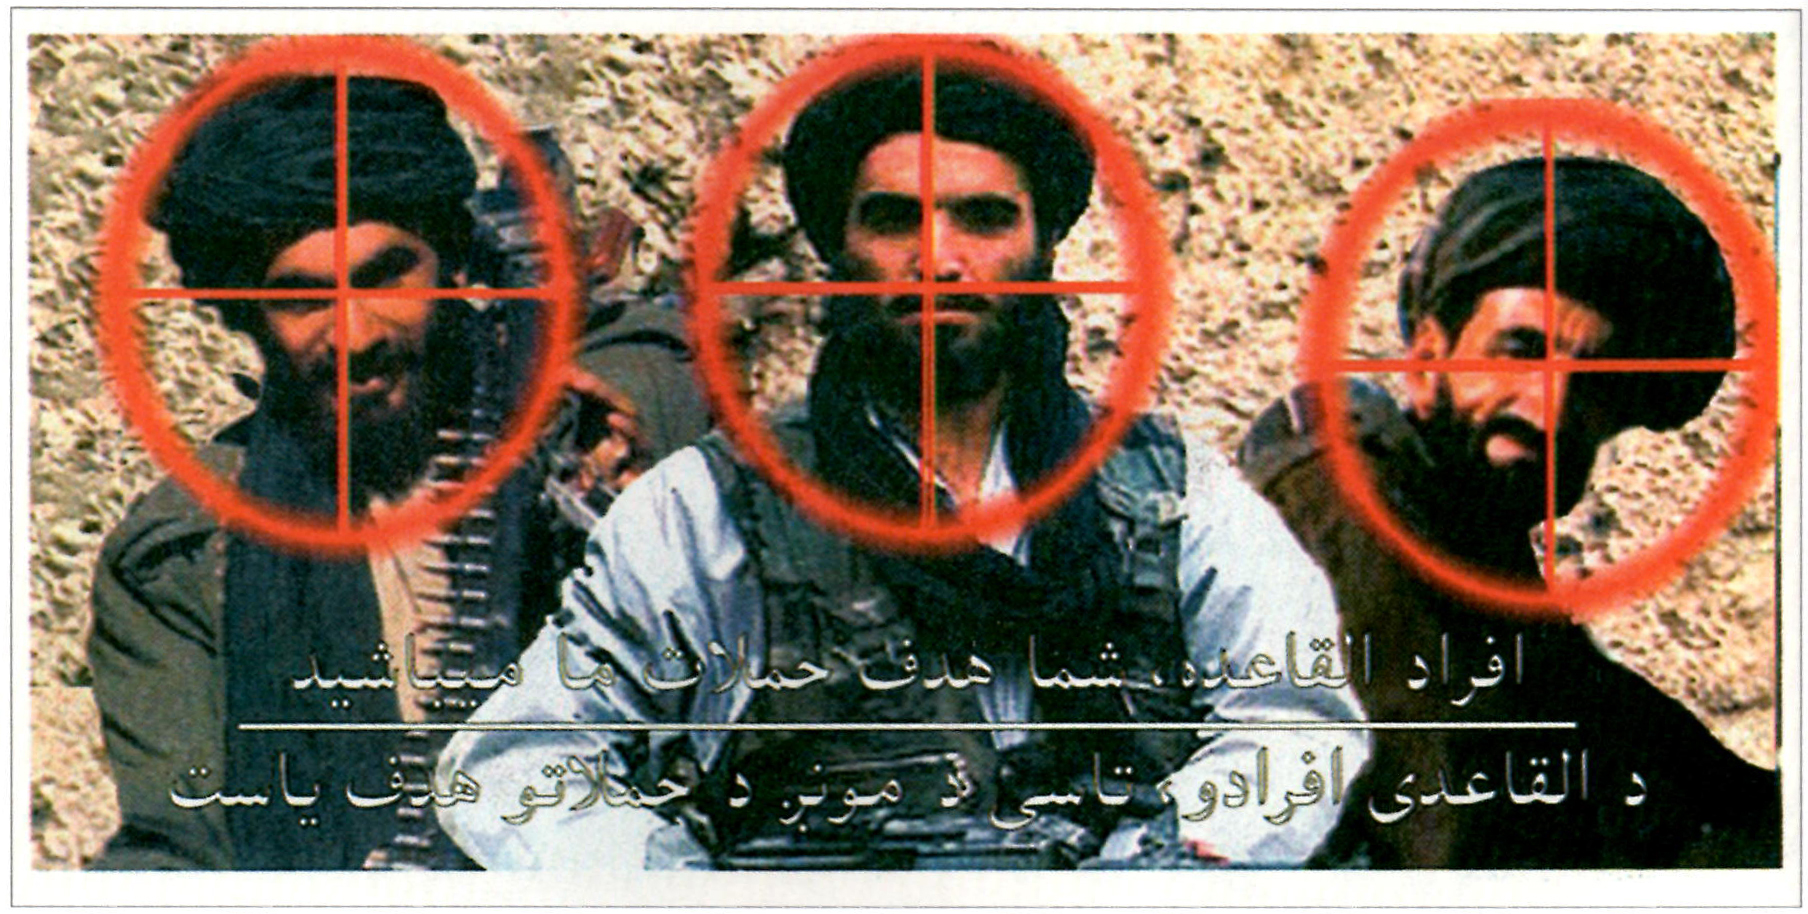 u s  military psyop leaflets from iraq and afghanistan